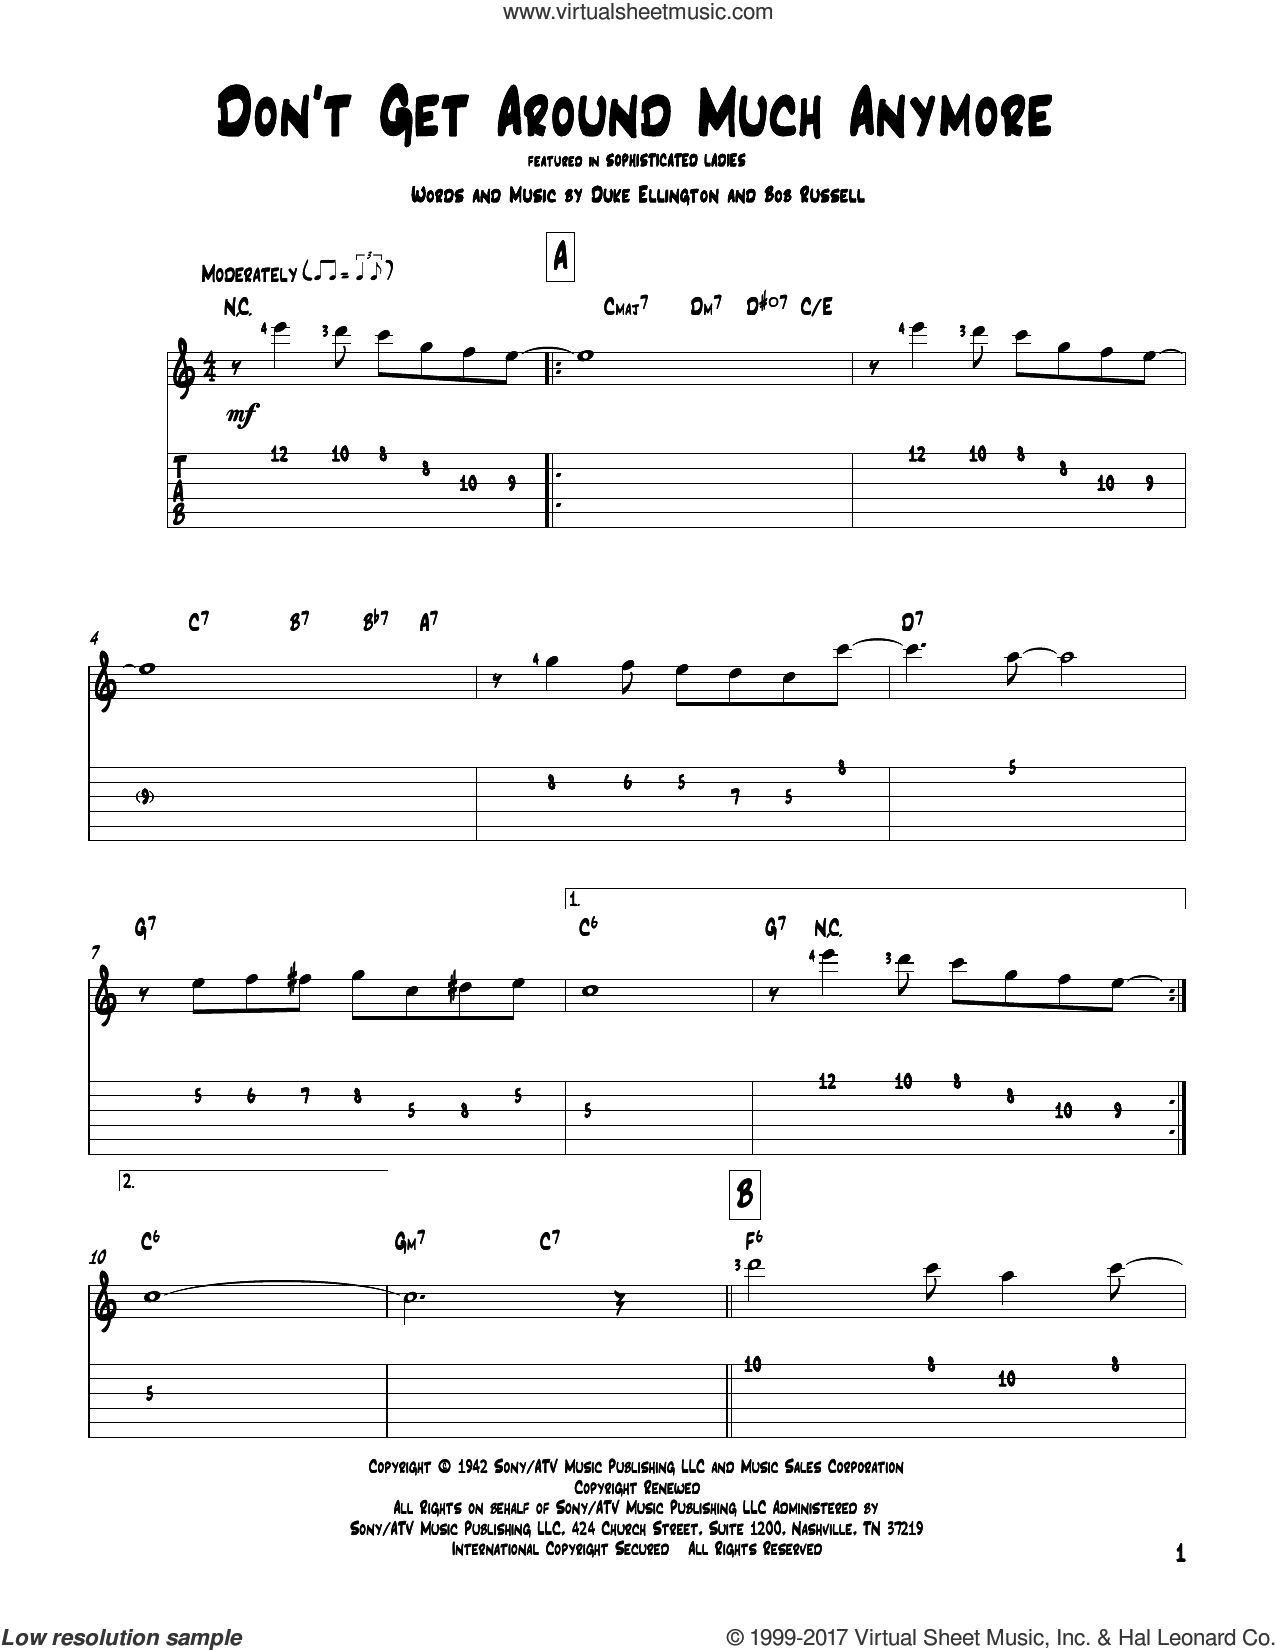 Don't Get Around Much Anymore sheet music for guitar solo by Duke Ellington and Bob Russell, intermediate skill level